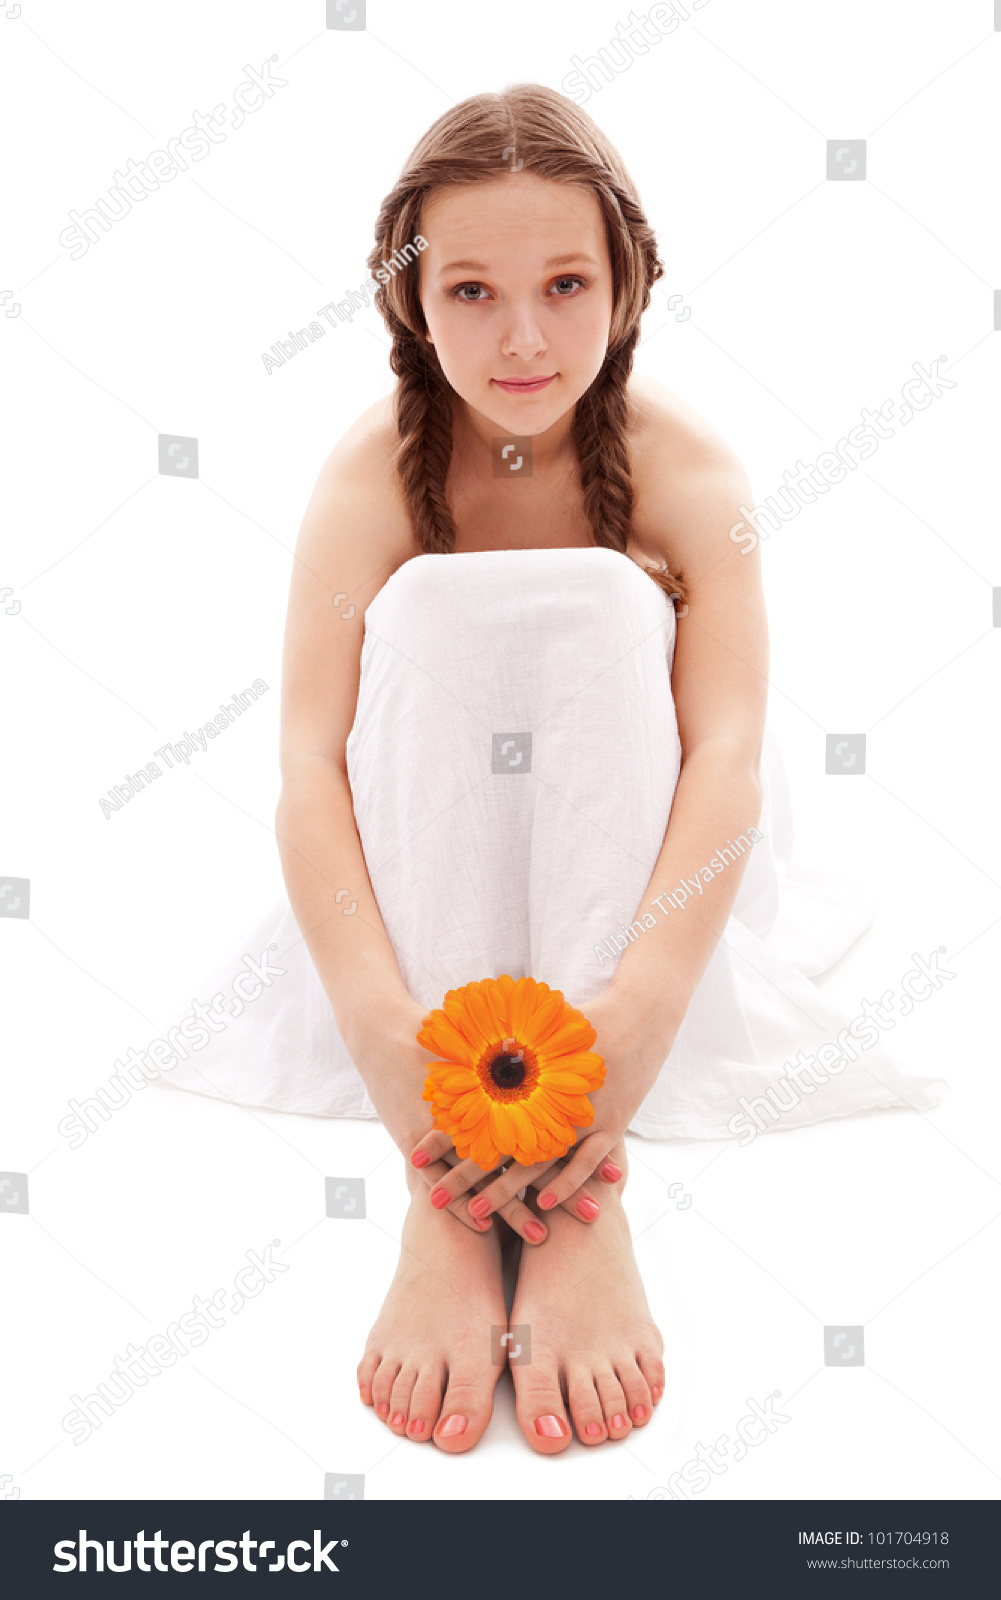 young feet young woman hand and feet with manicure and orange flower isolated on white